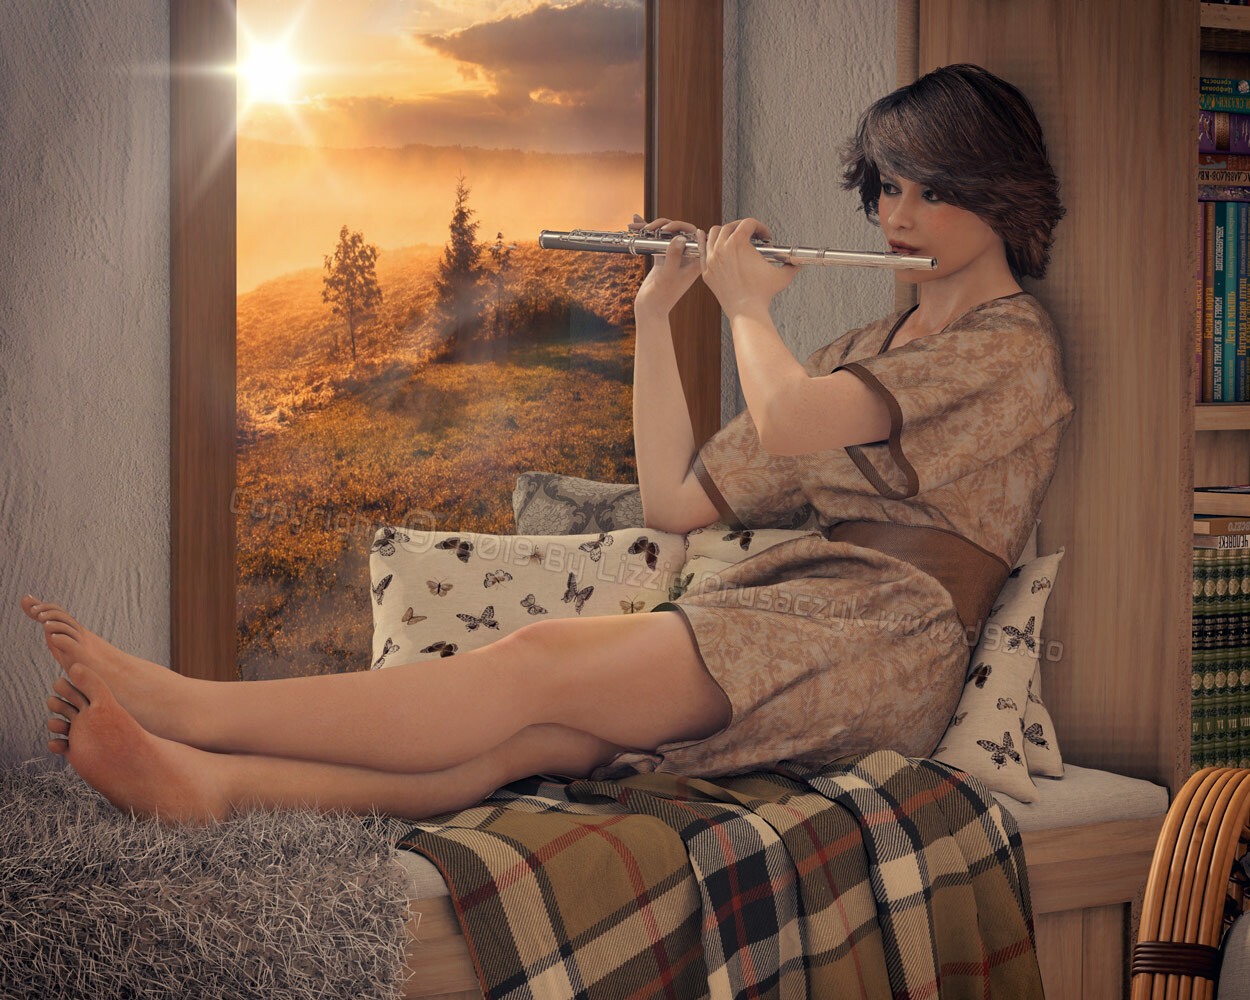 In the early hours of the morning, the woman plays a concerto on her flute.